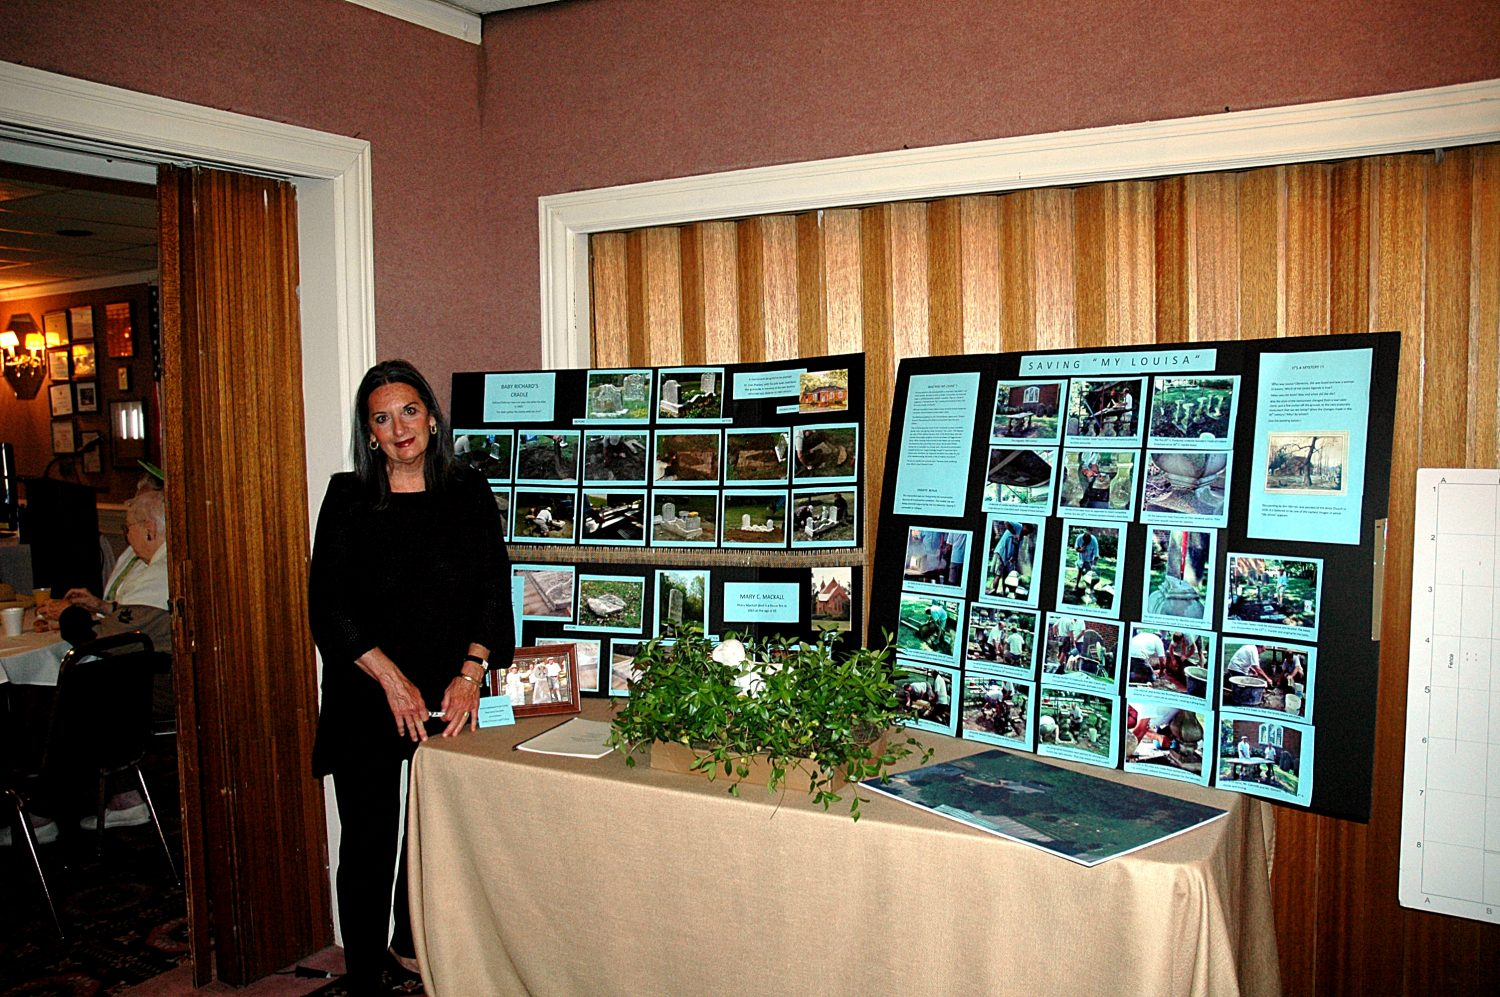 Bridget Blake and the All Hallows Parish Cemetery Committee Display